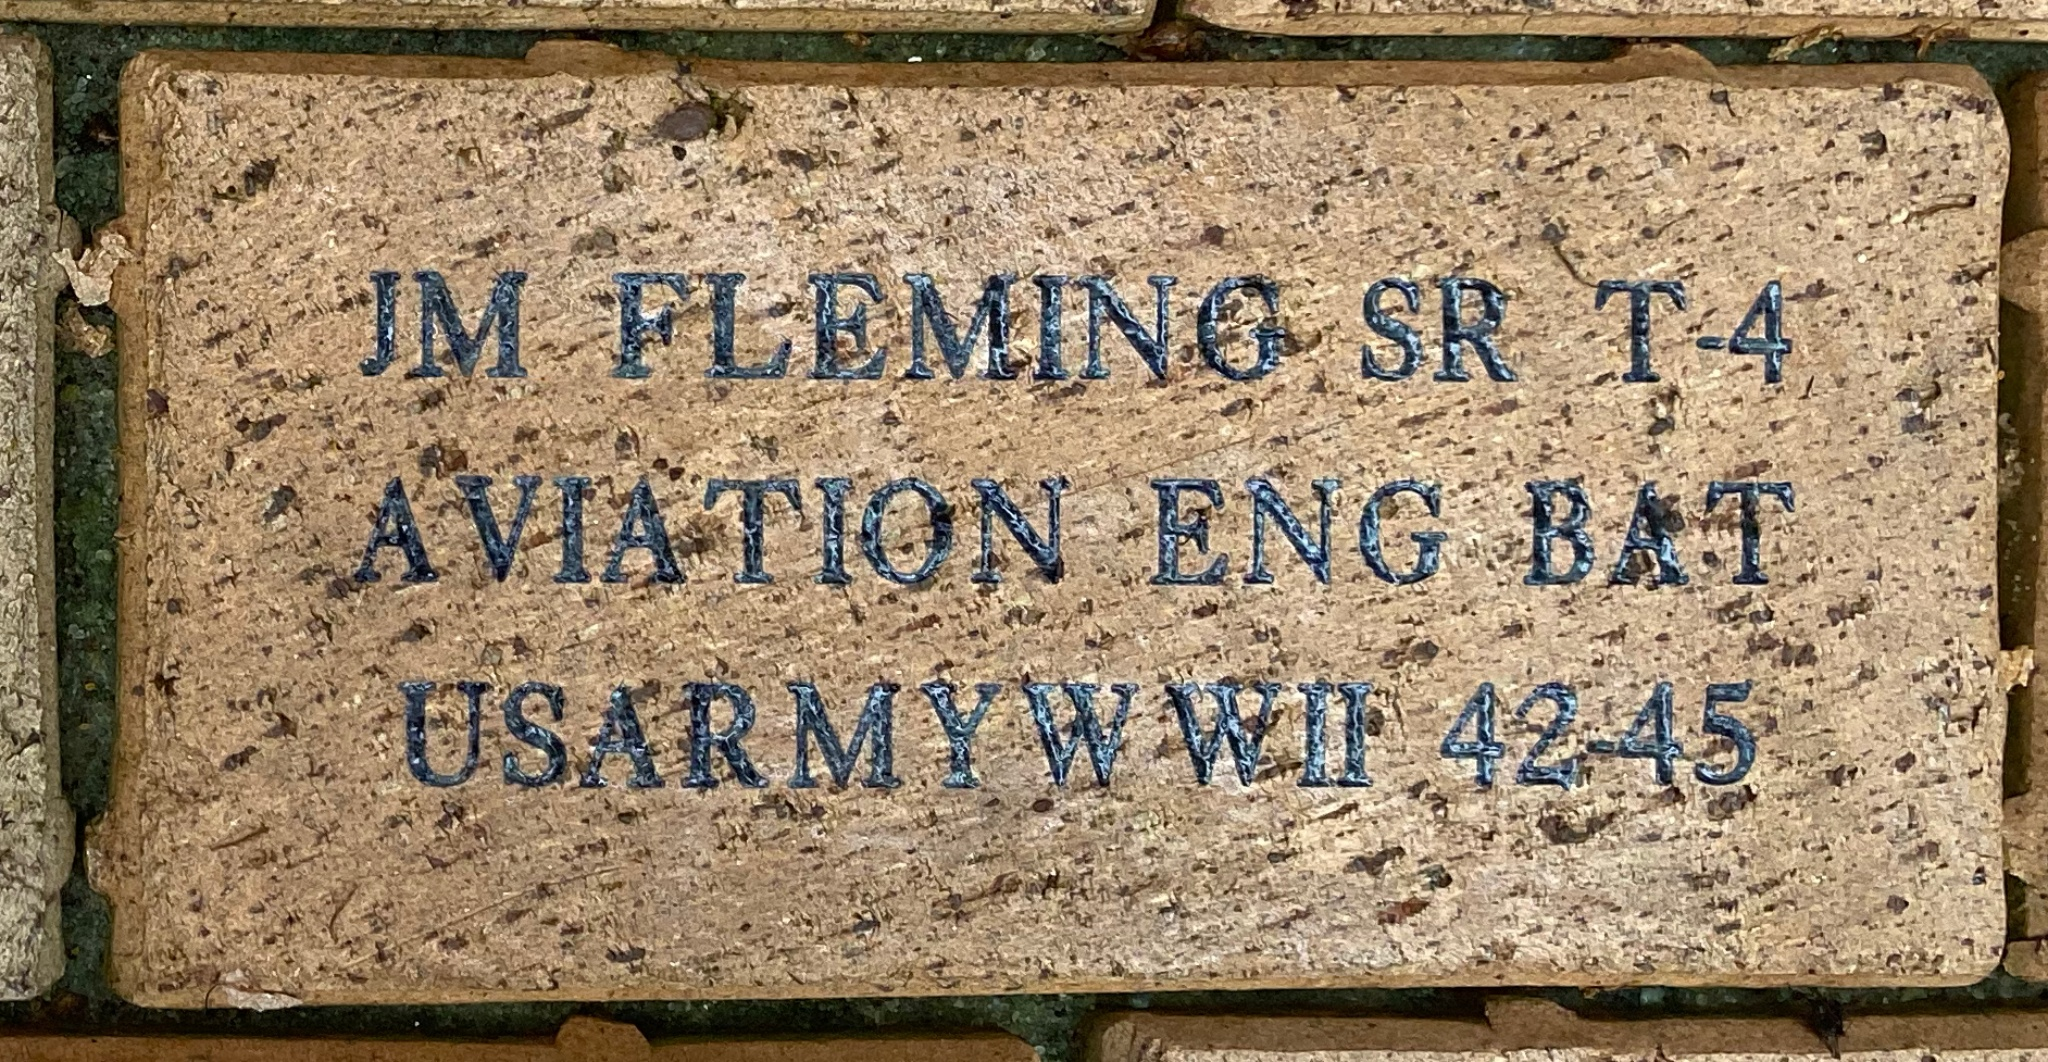 J.M. FLEMING SR T-4 AVIATION ENG BAT US ARMY WWII 42-45